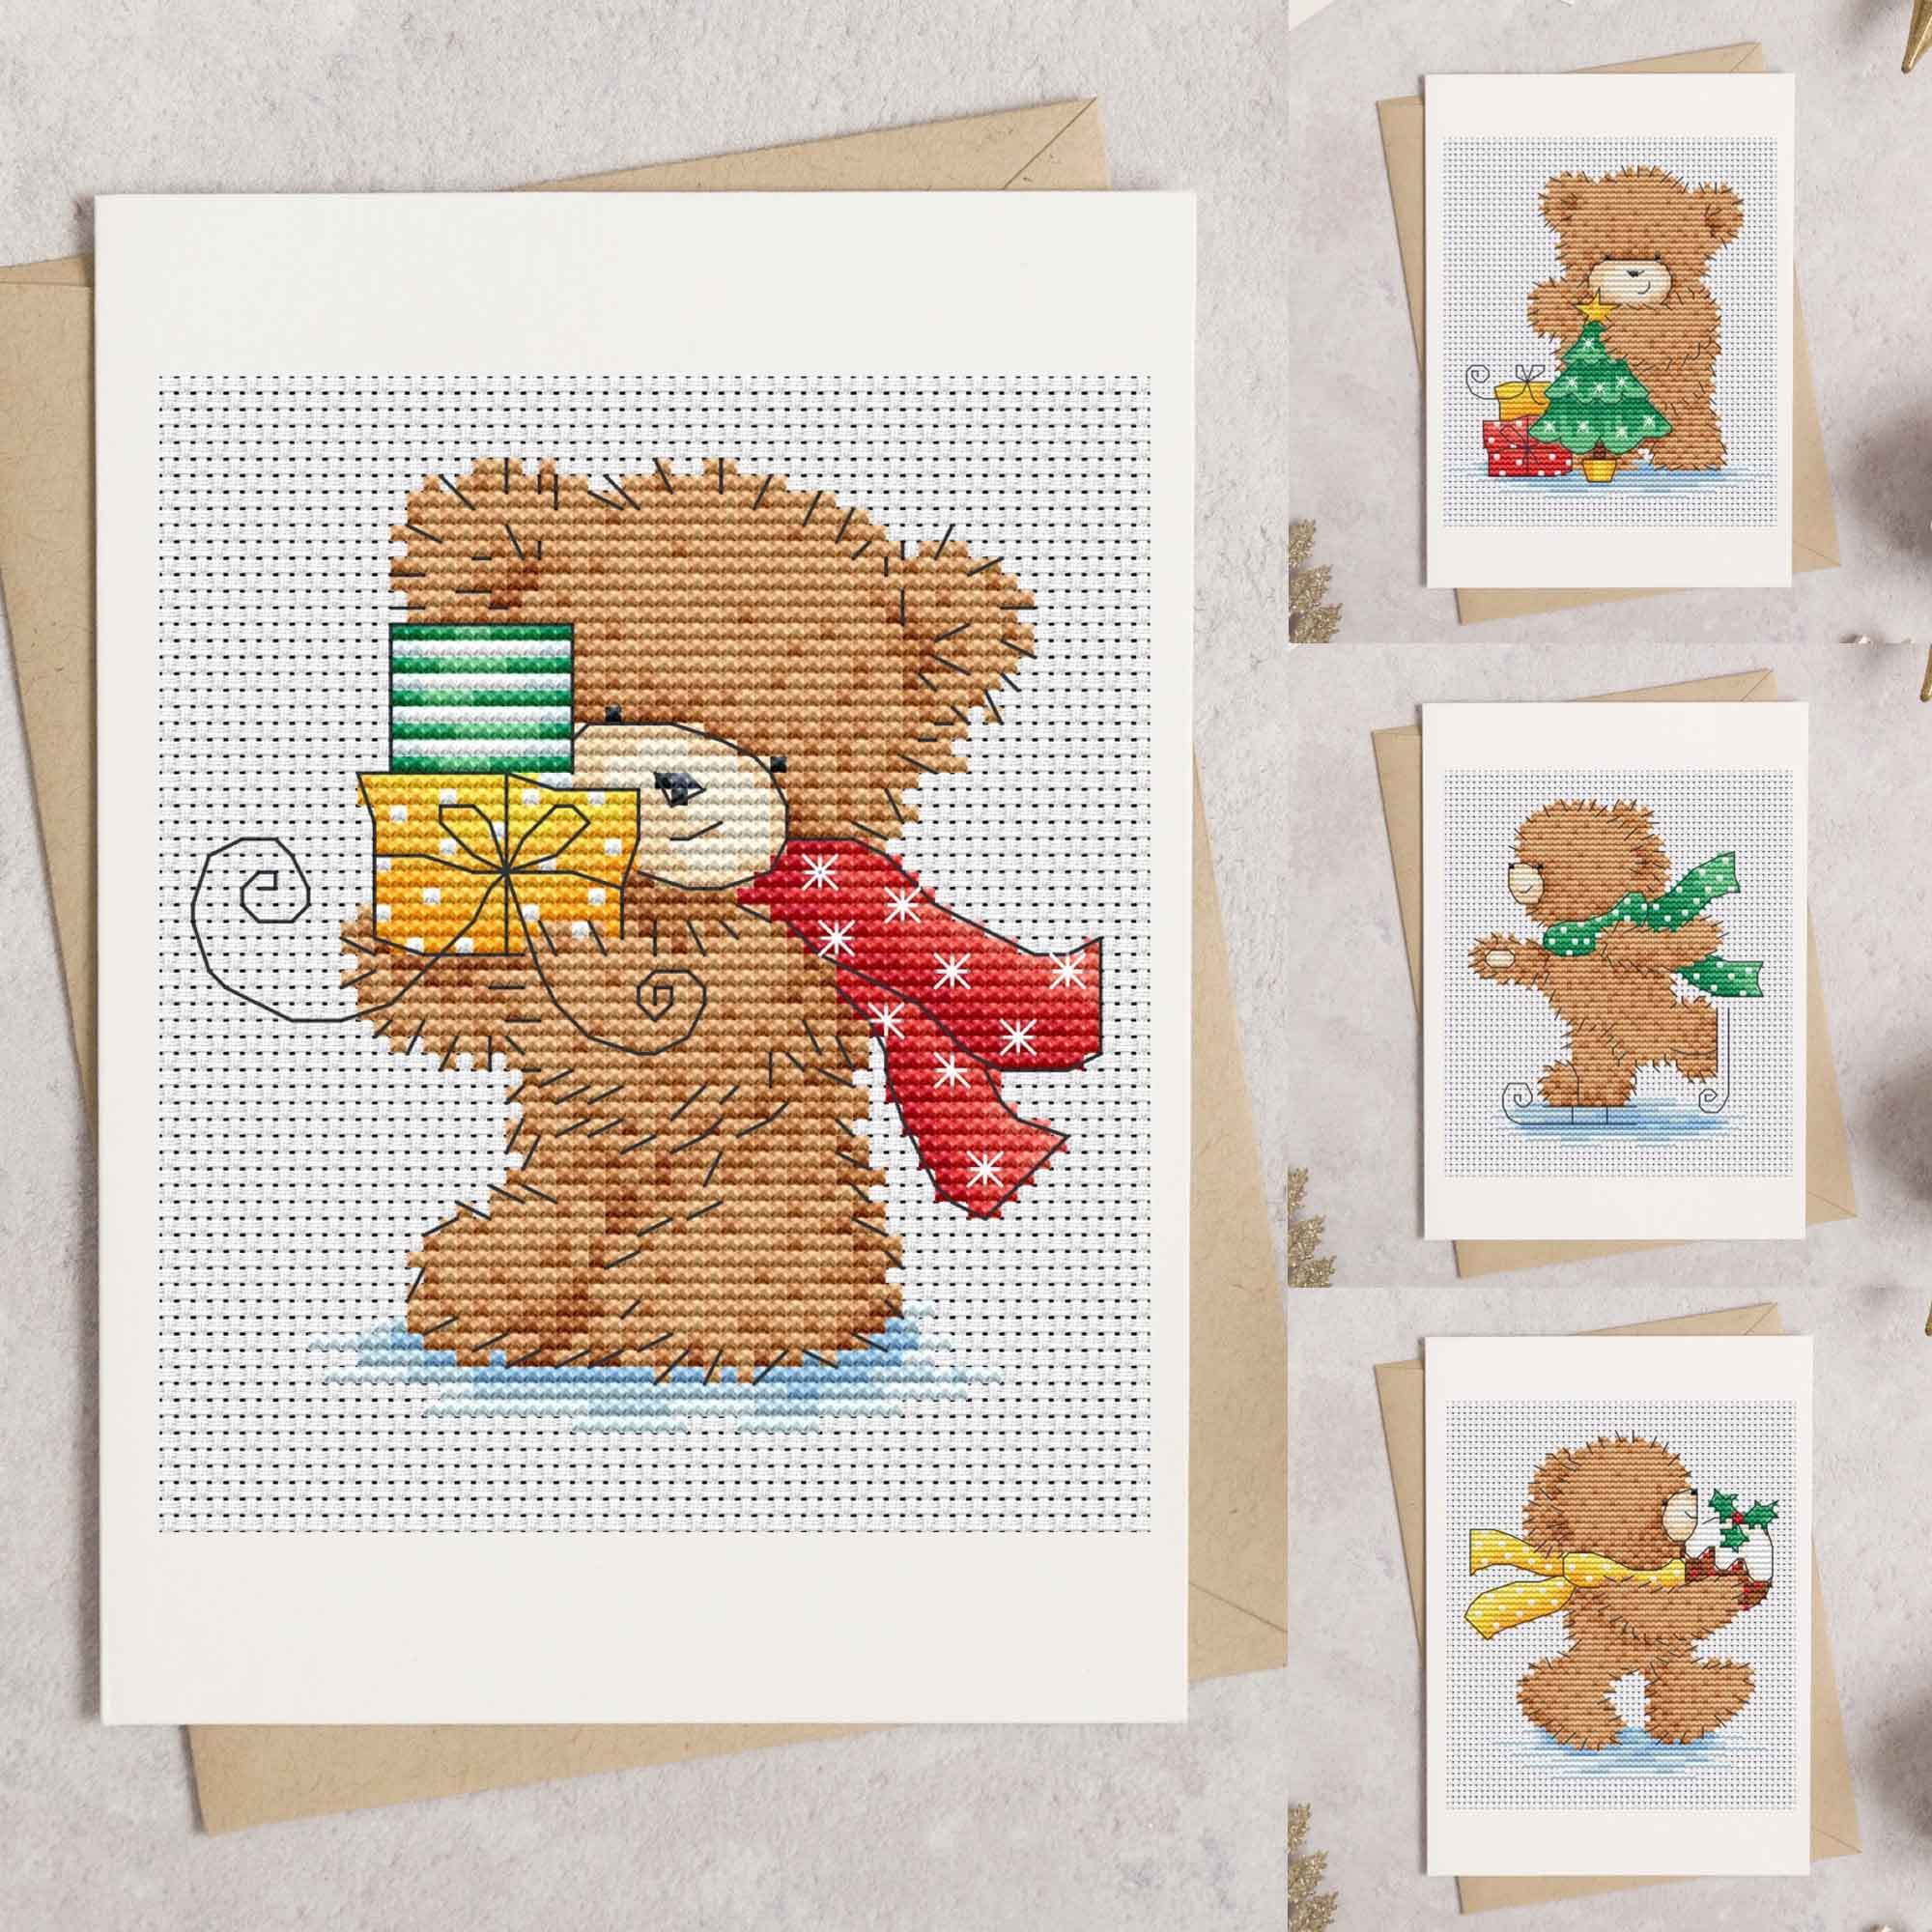 Christmas cross stitch pattern downloads by Lucie Heaton Cross Stitch Designs